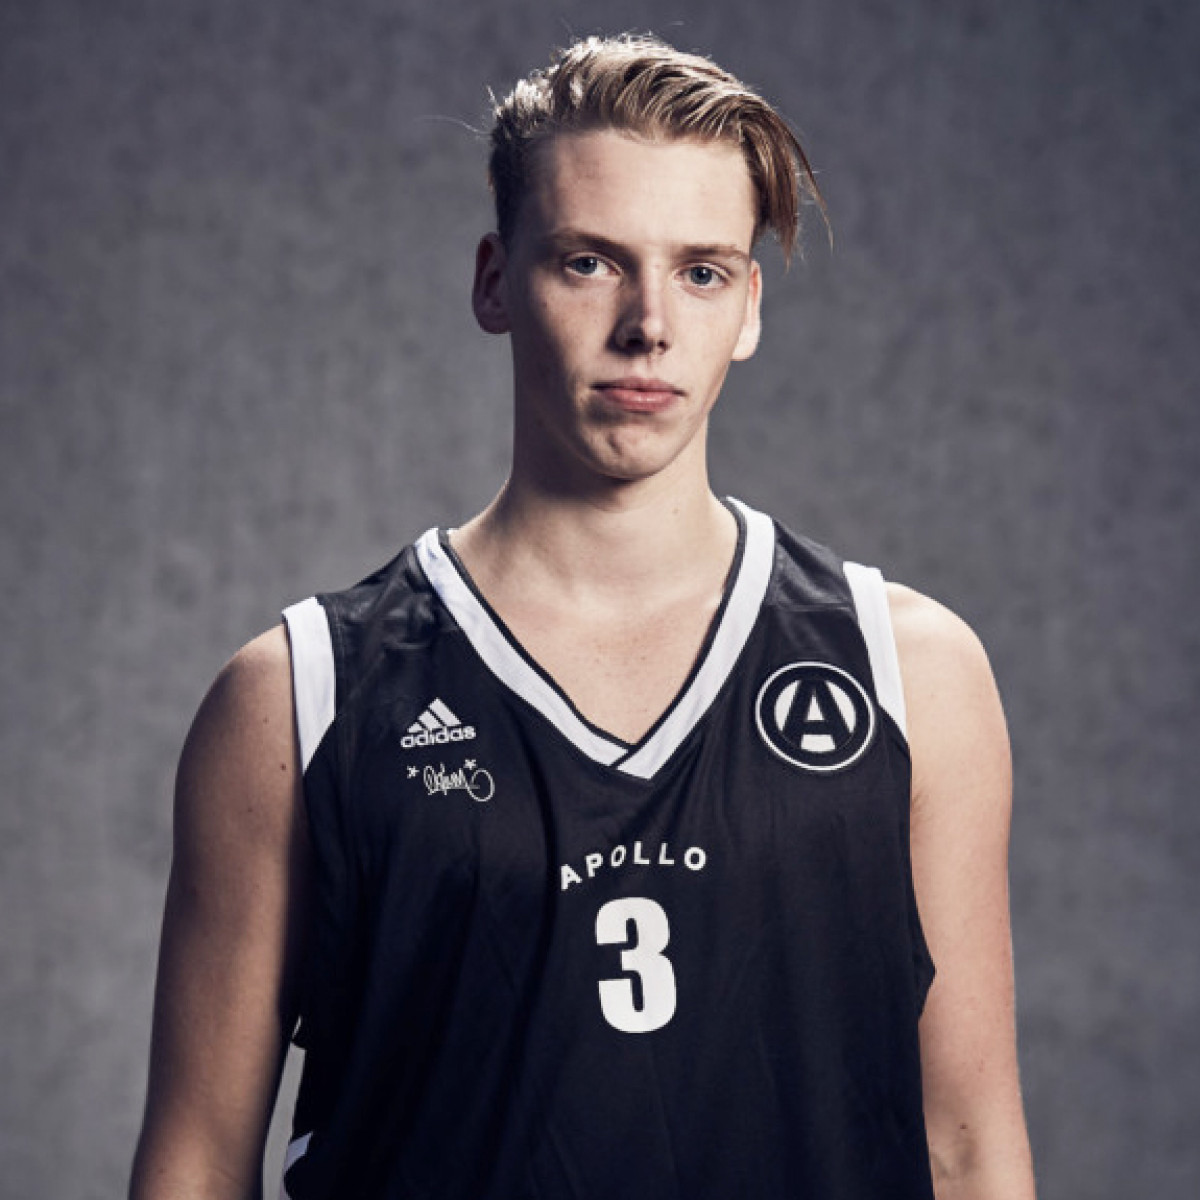 Photo of Lucas Faijdherbe, 2018-2019 season